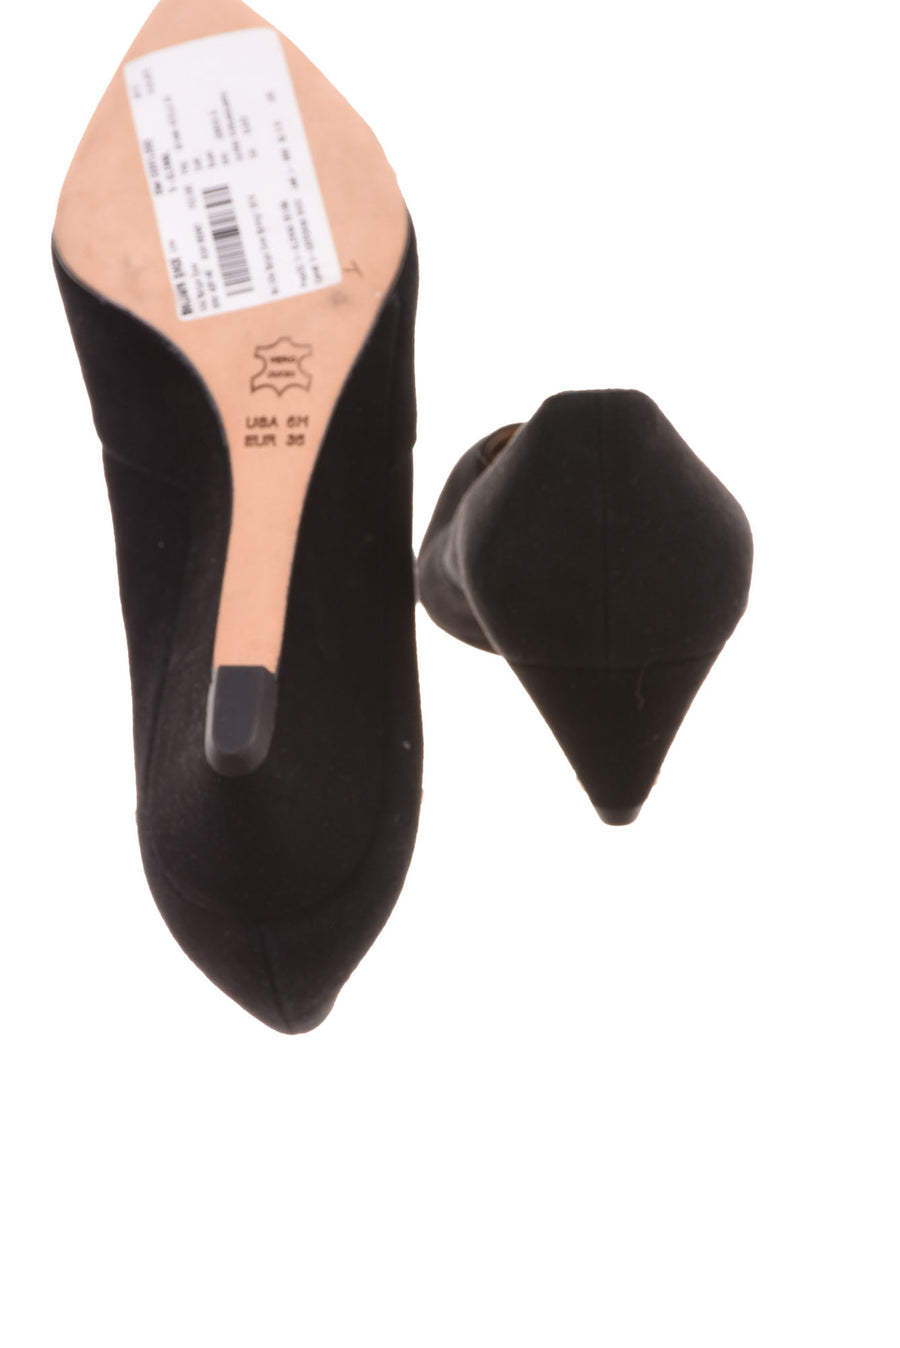 NEW Via Spiga Women's Shoes 6 Black